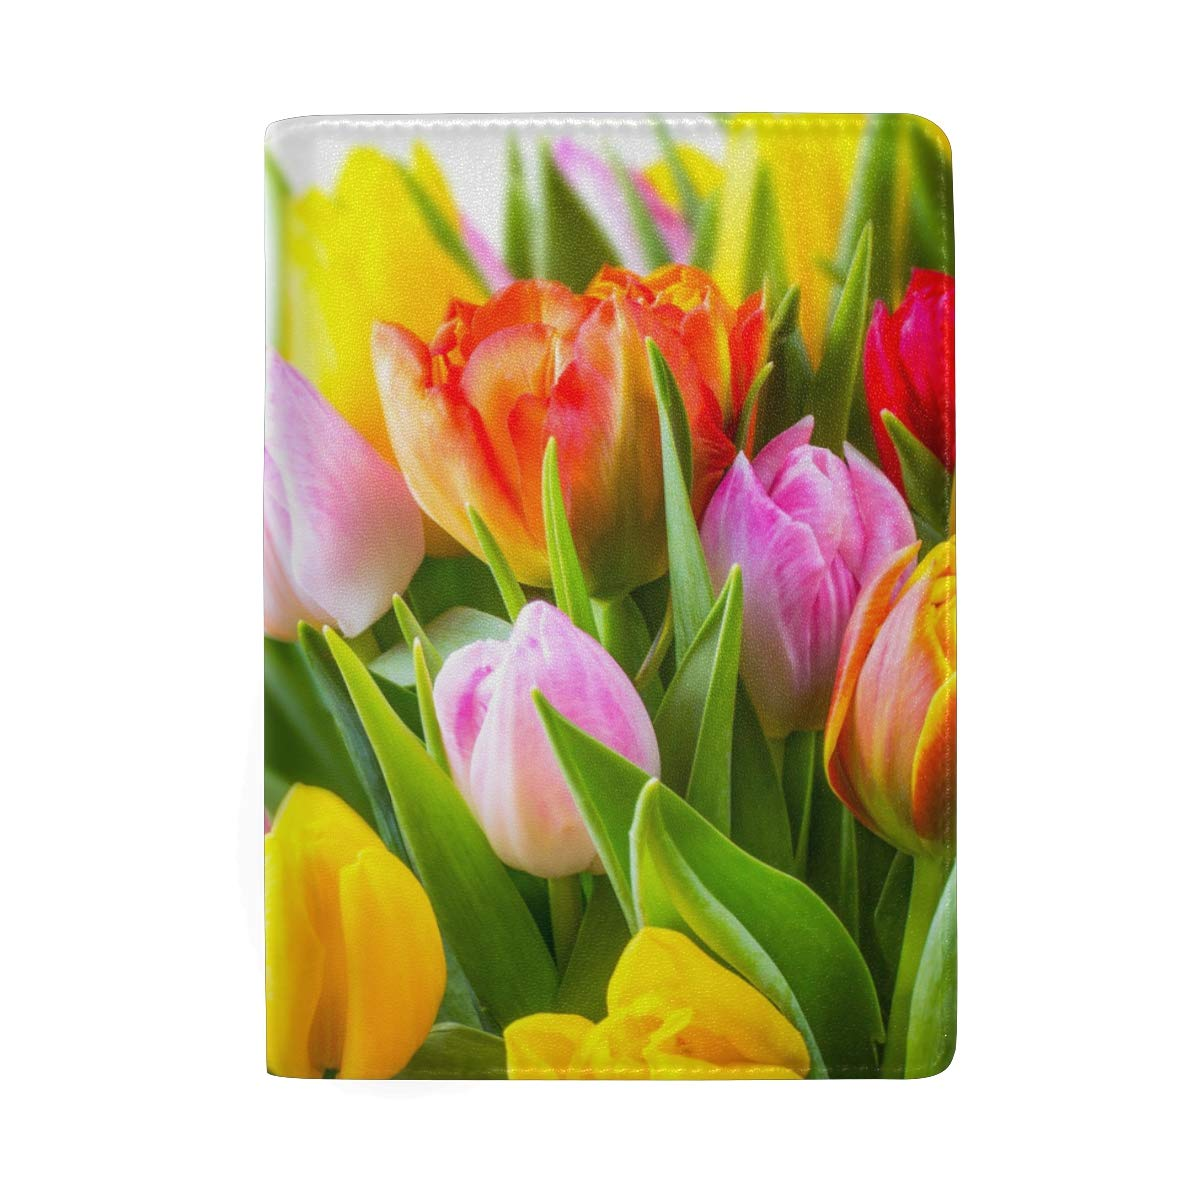 Eranium Flowers Leather Passport Holder Cover Case Protector for Men Women Travel with Slots